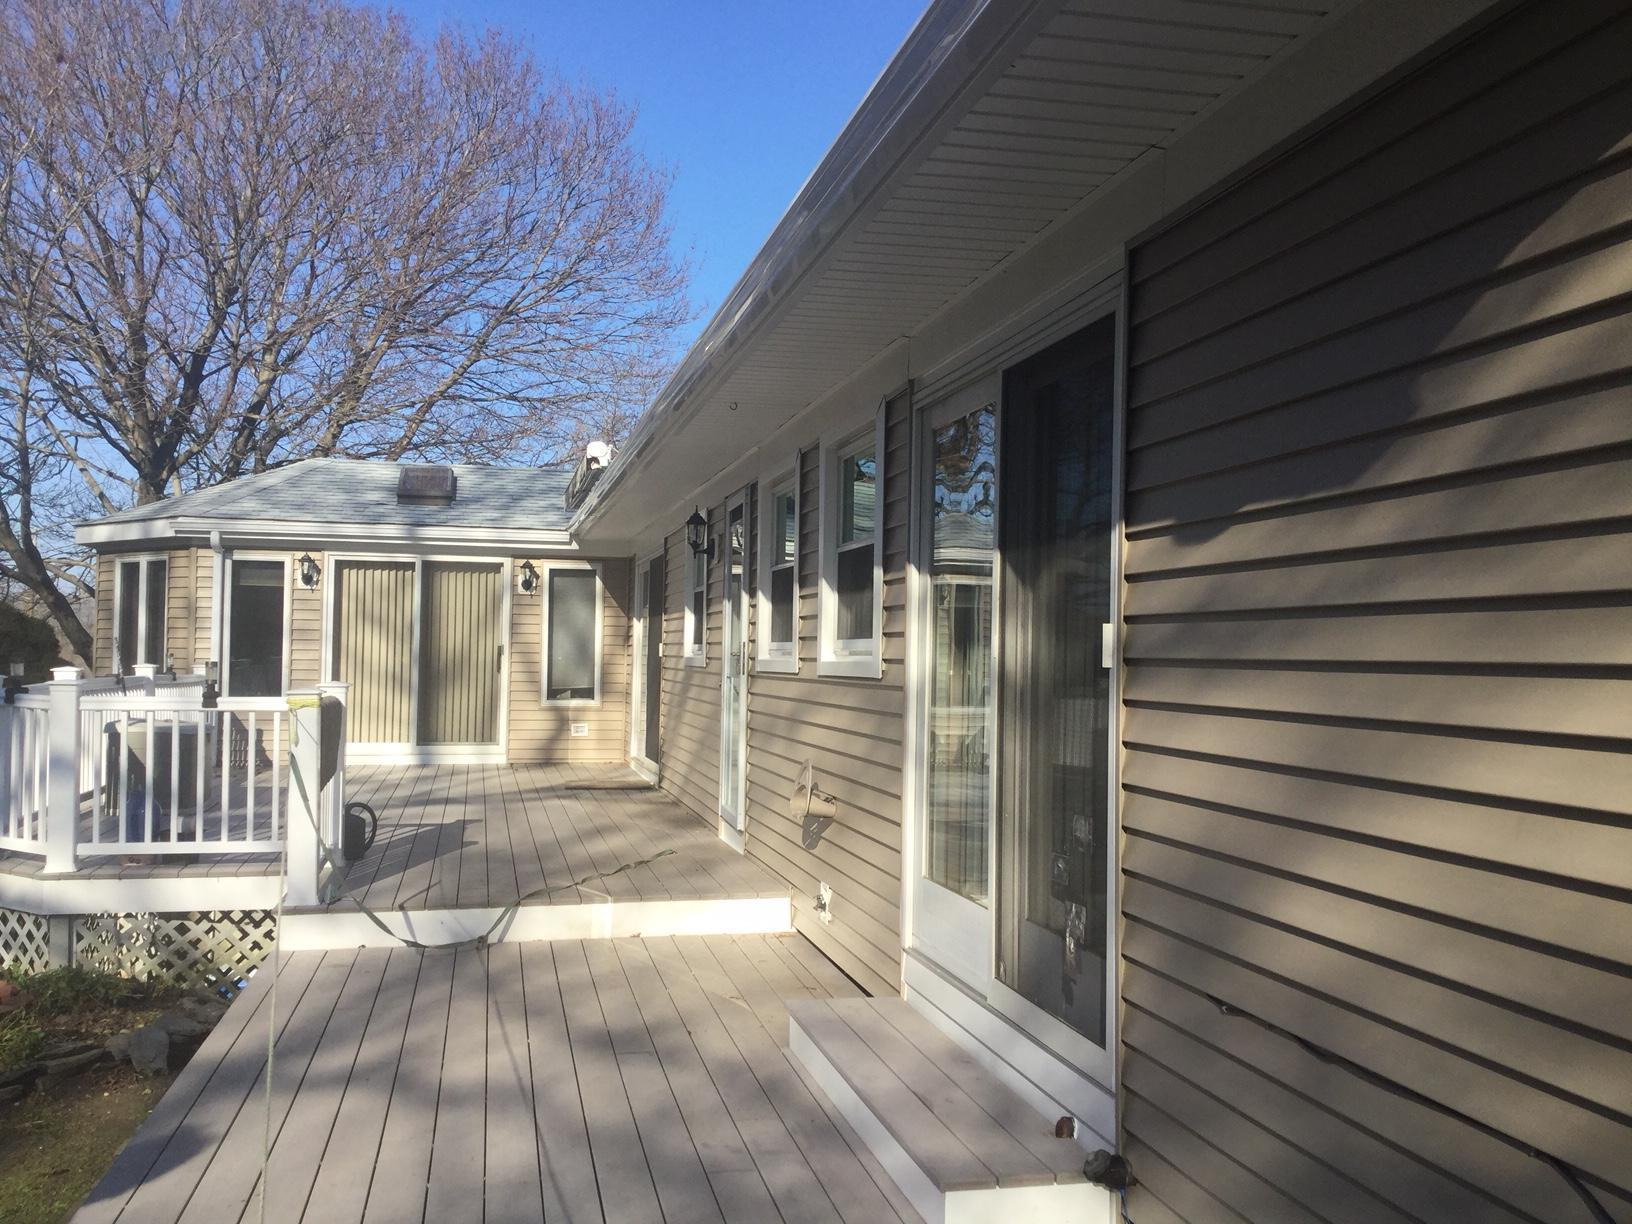 Portsmith, RI - Siding Replacement - After Photo